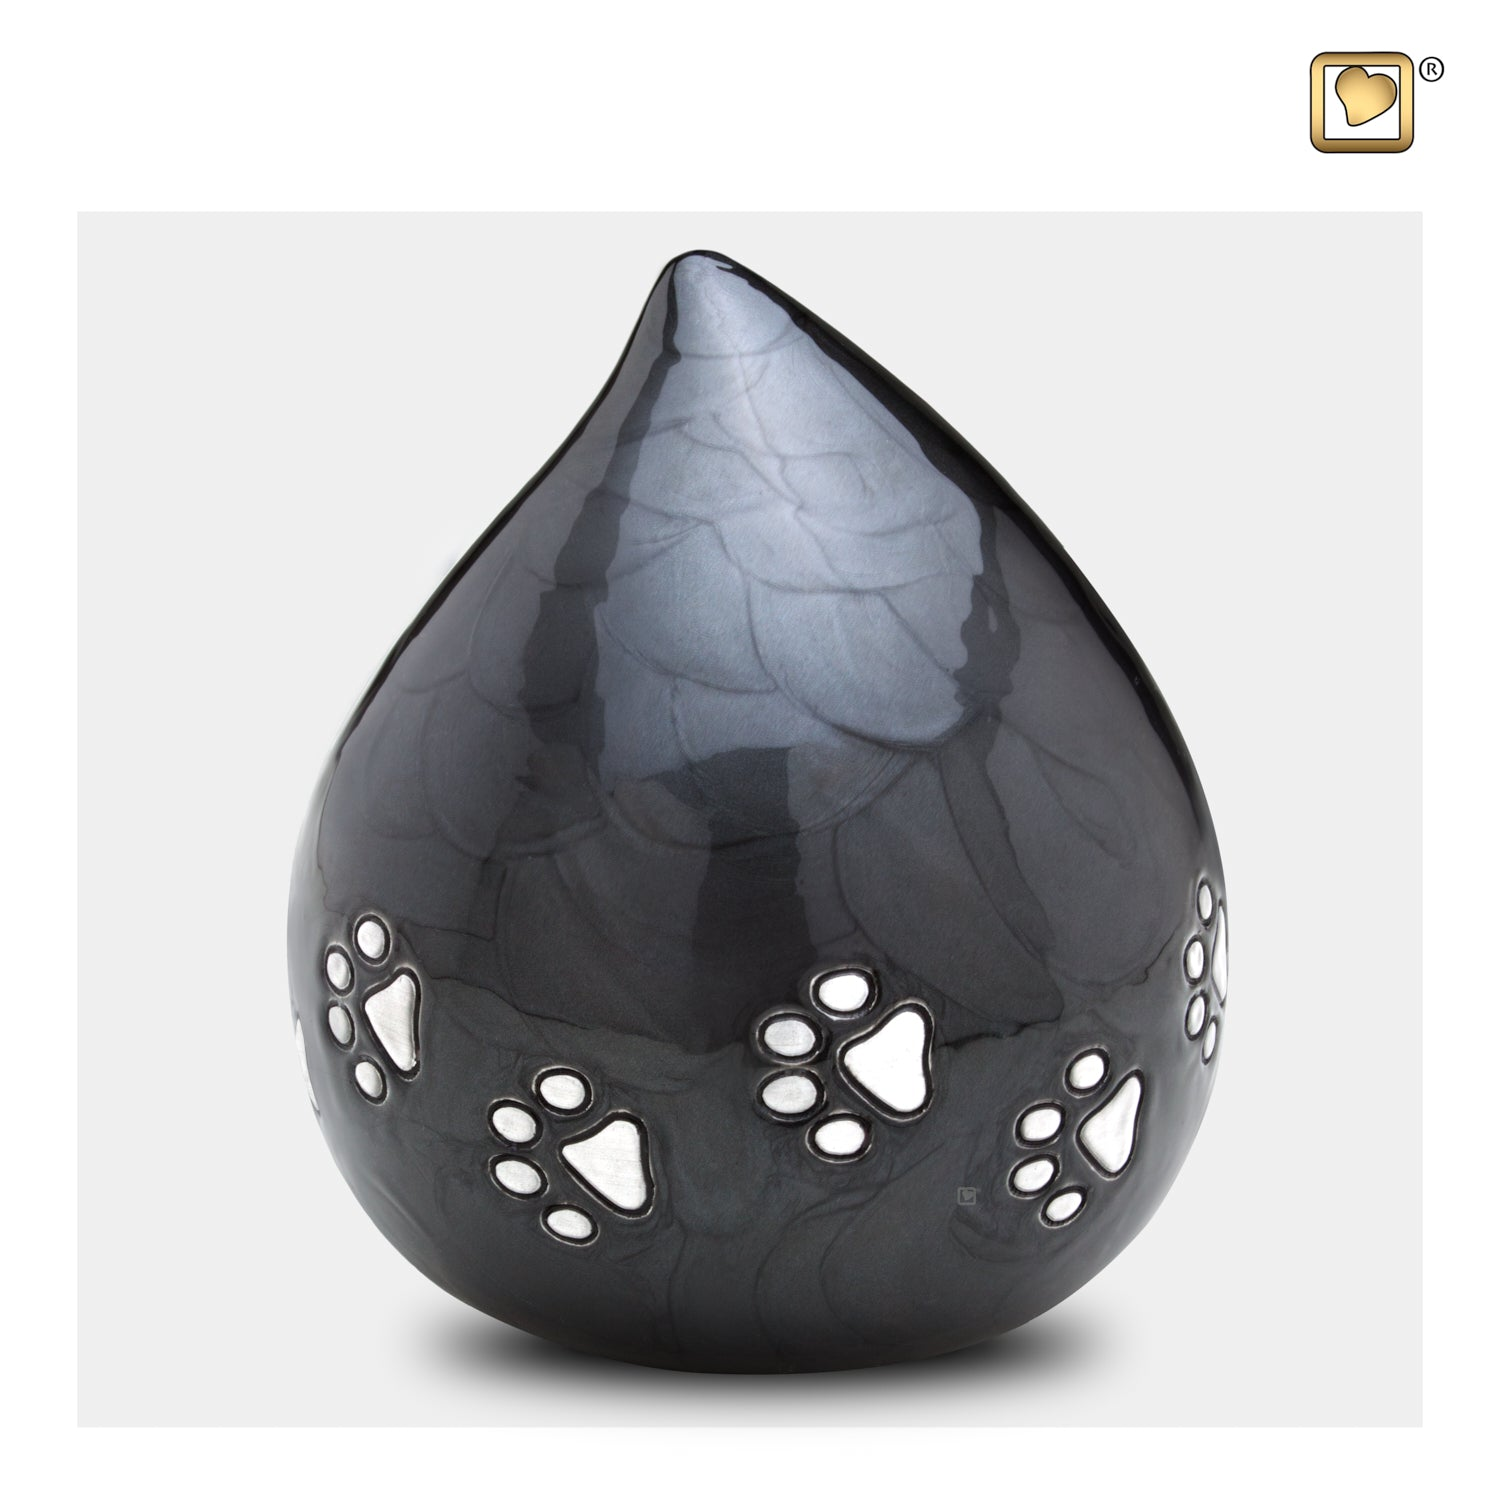 LoveDrop Pet Midnight Urn